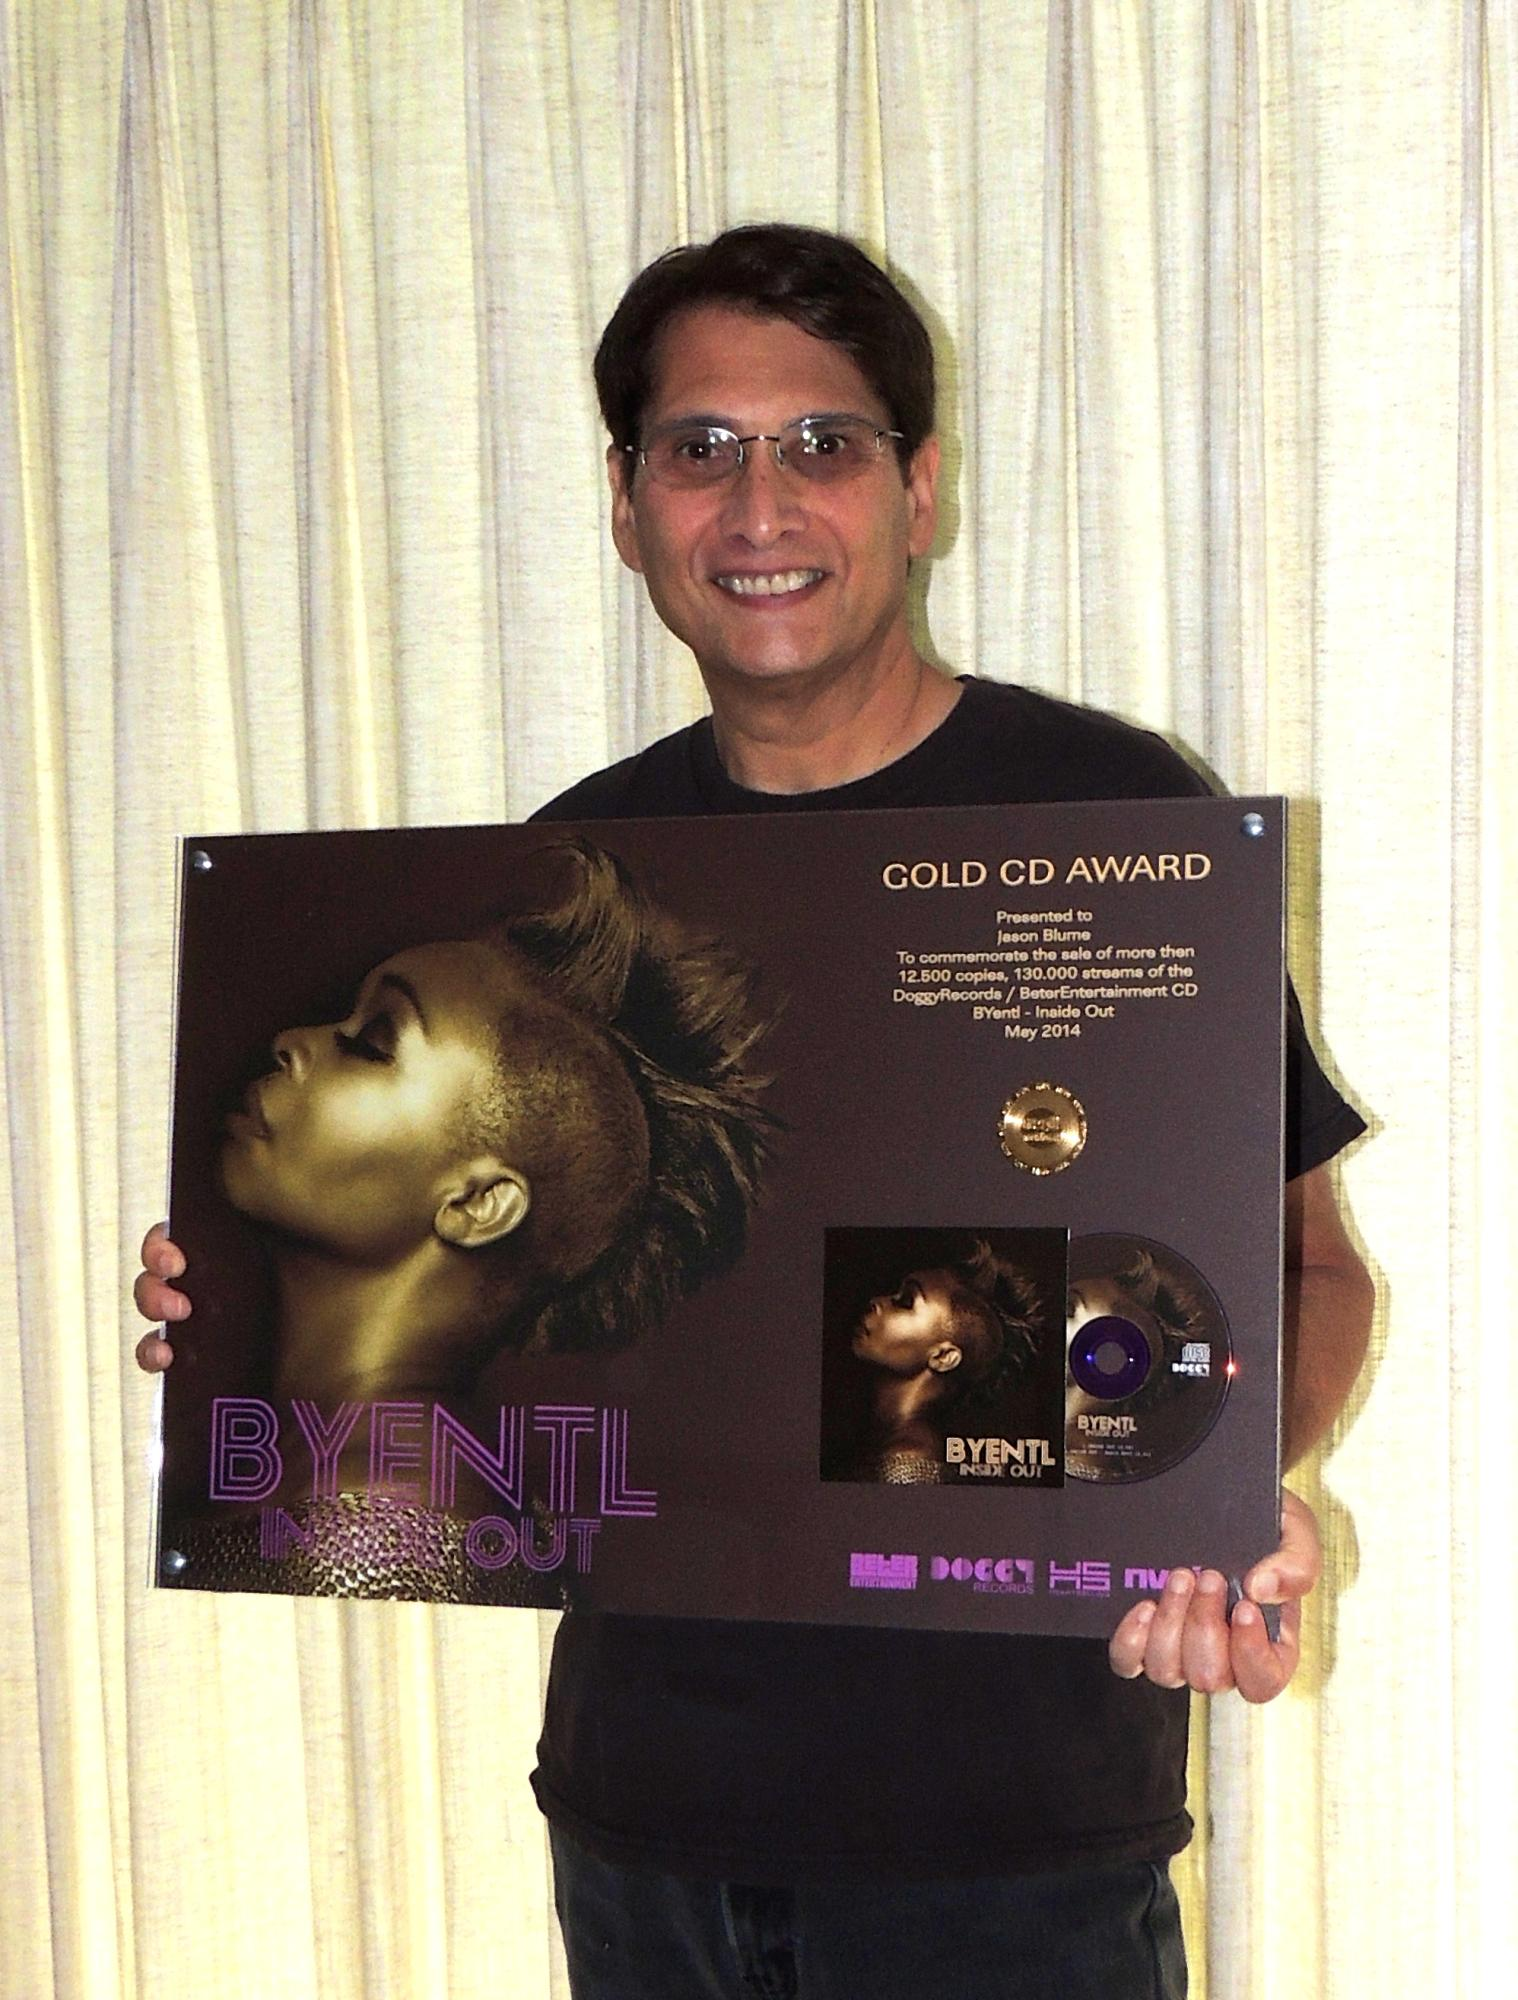 Byentl Gold Record